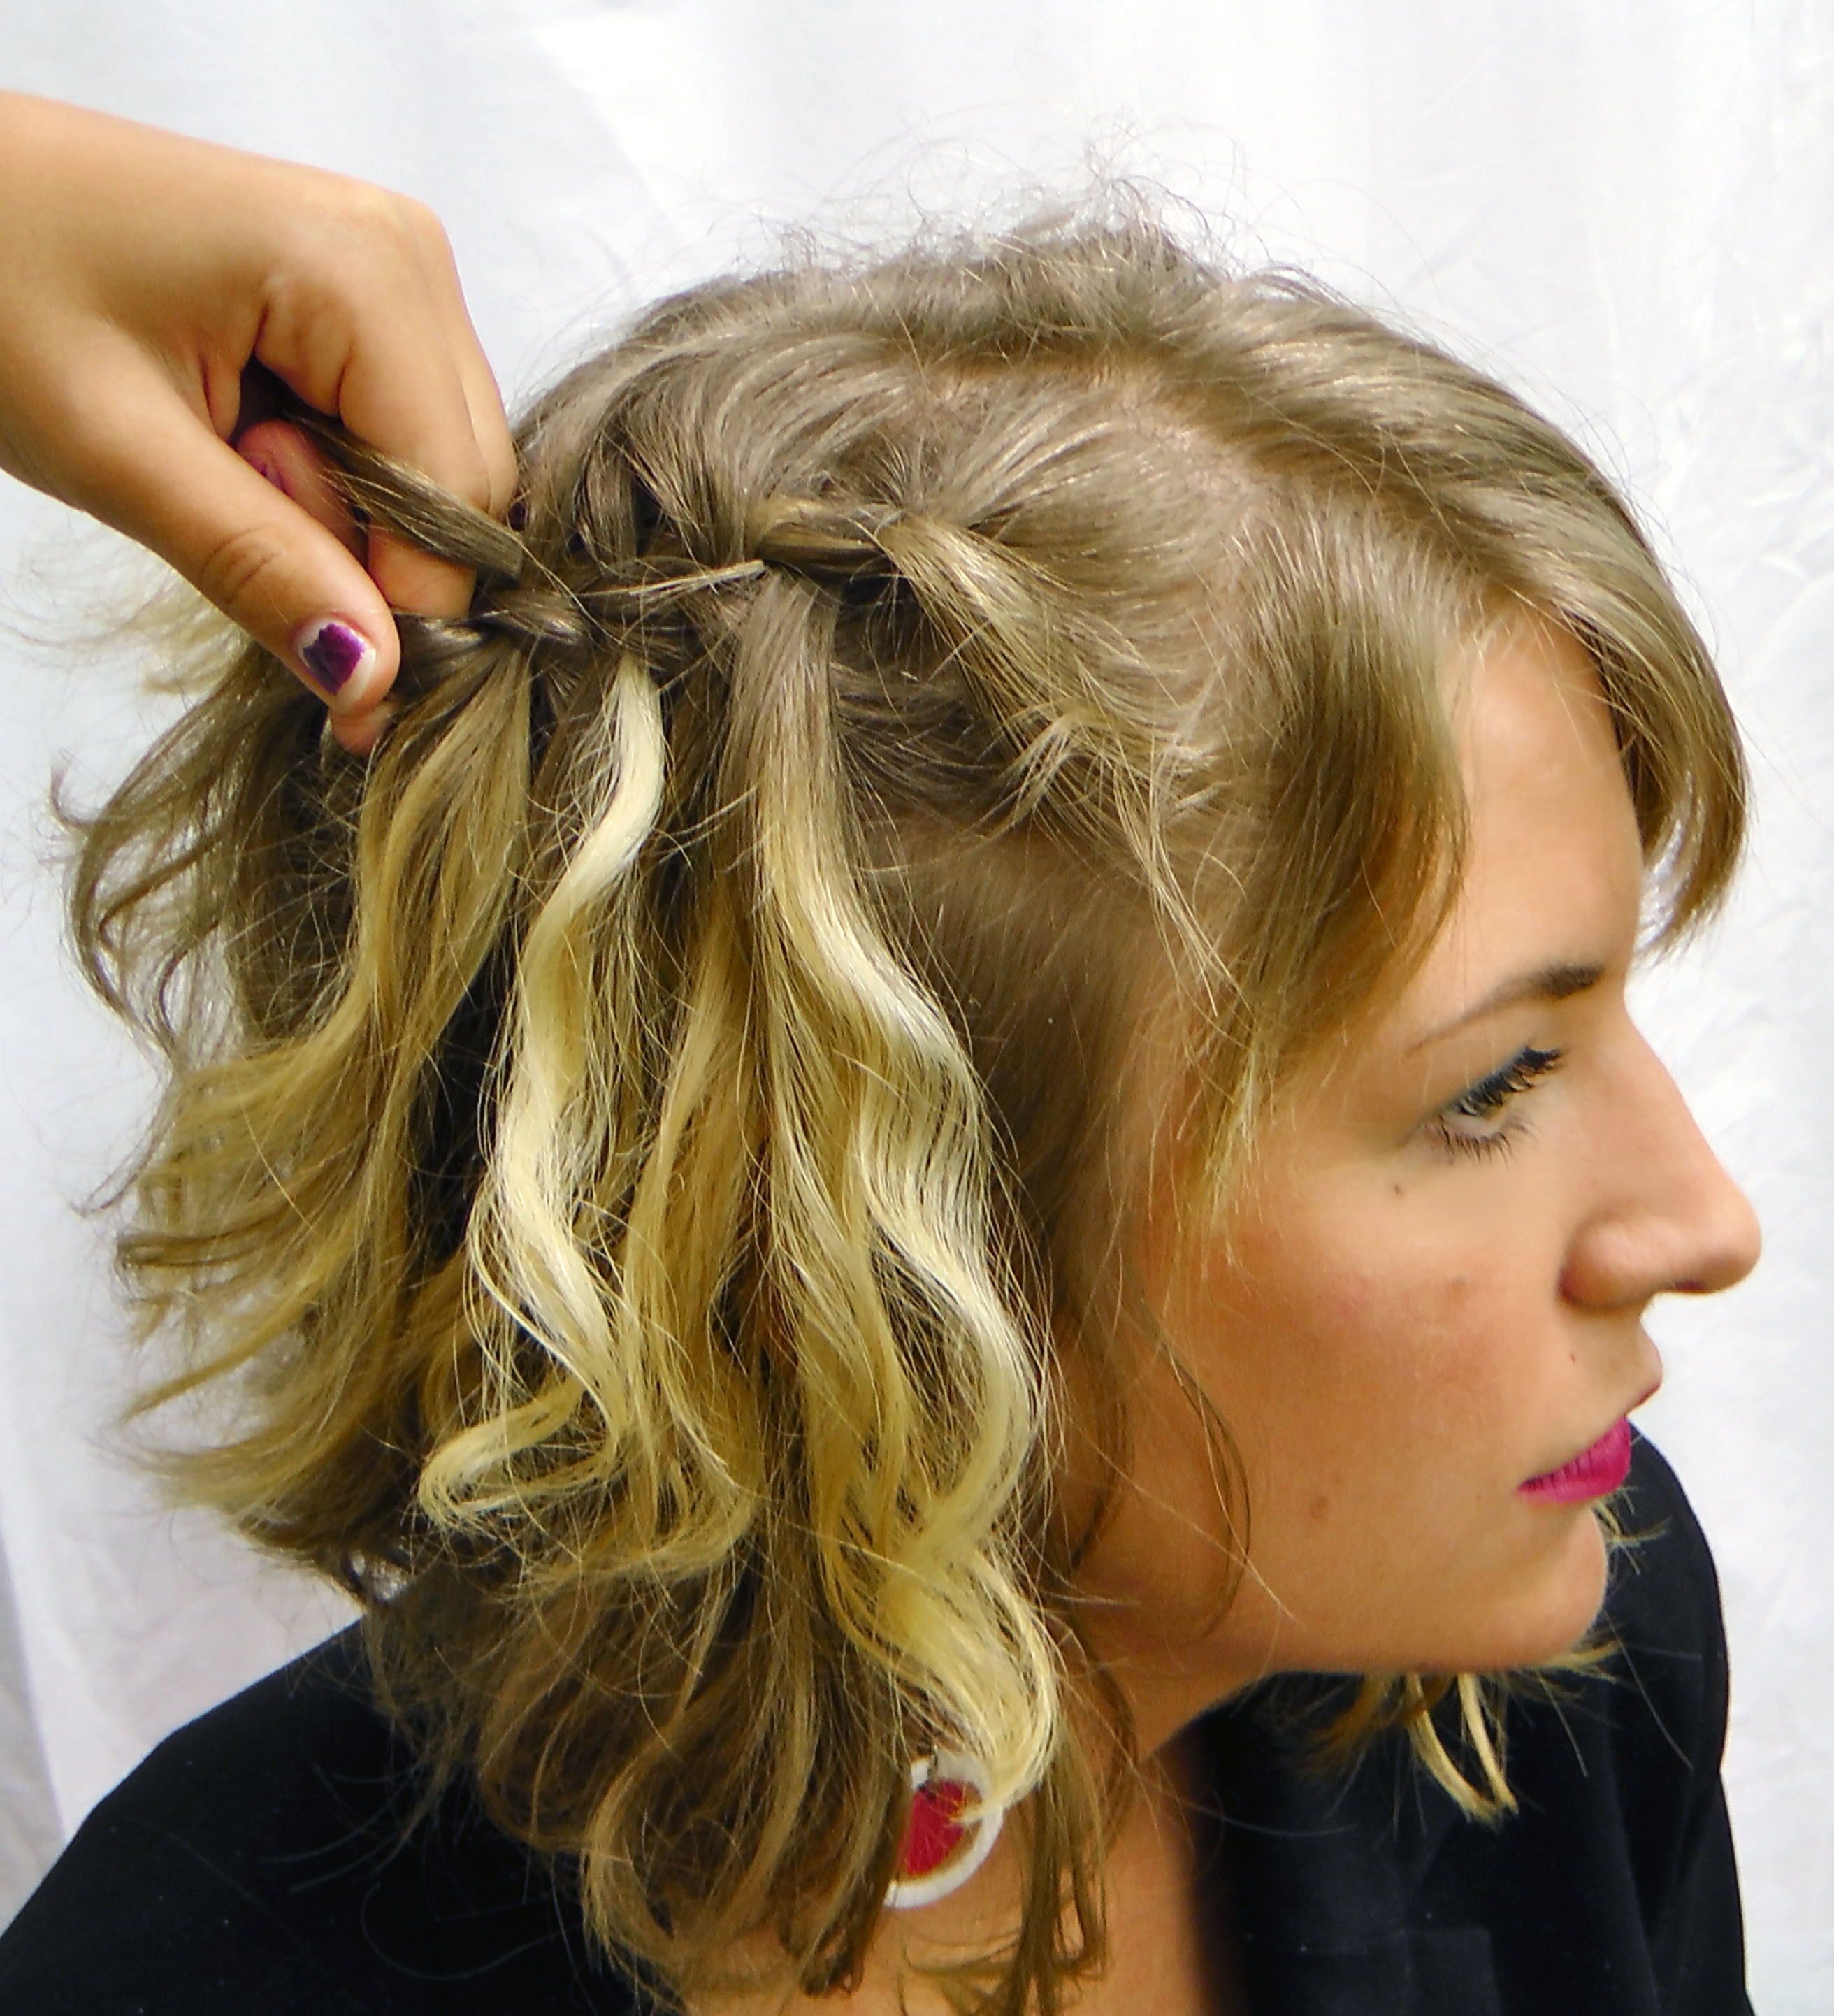 To curl the waterfall strands to achieve a more sophisticated look